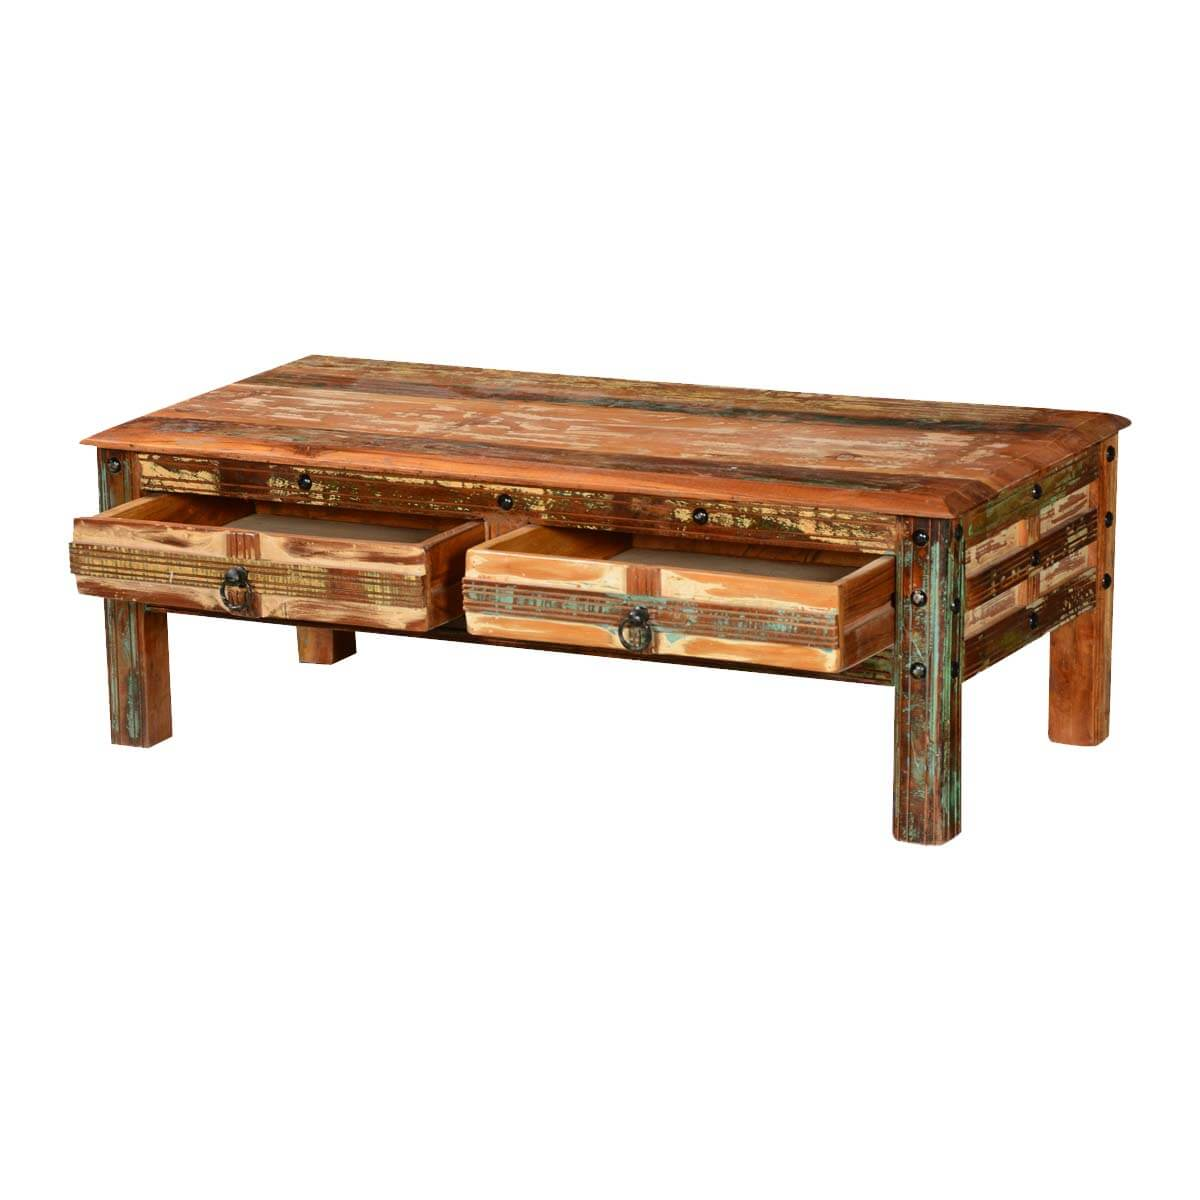 Pioneer Rustic Reclaimed Wood 45 Coffee Table W Drawers